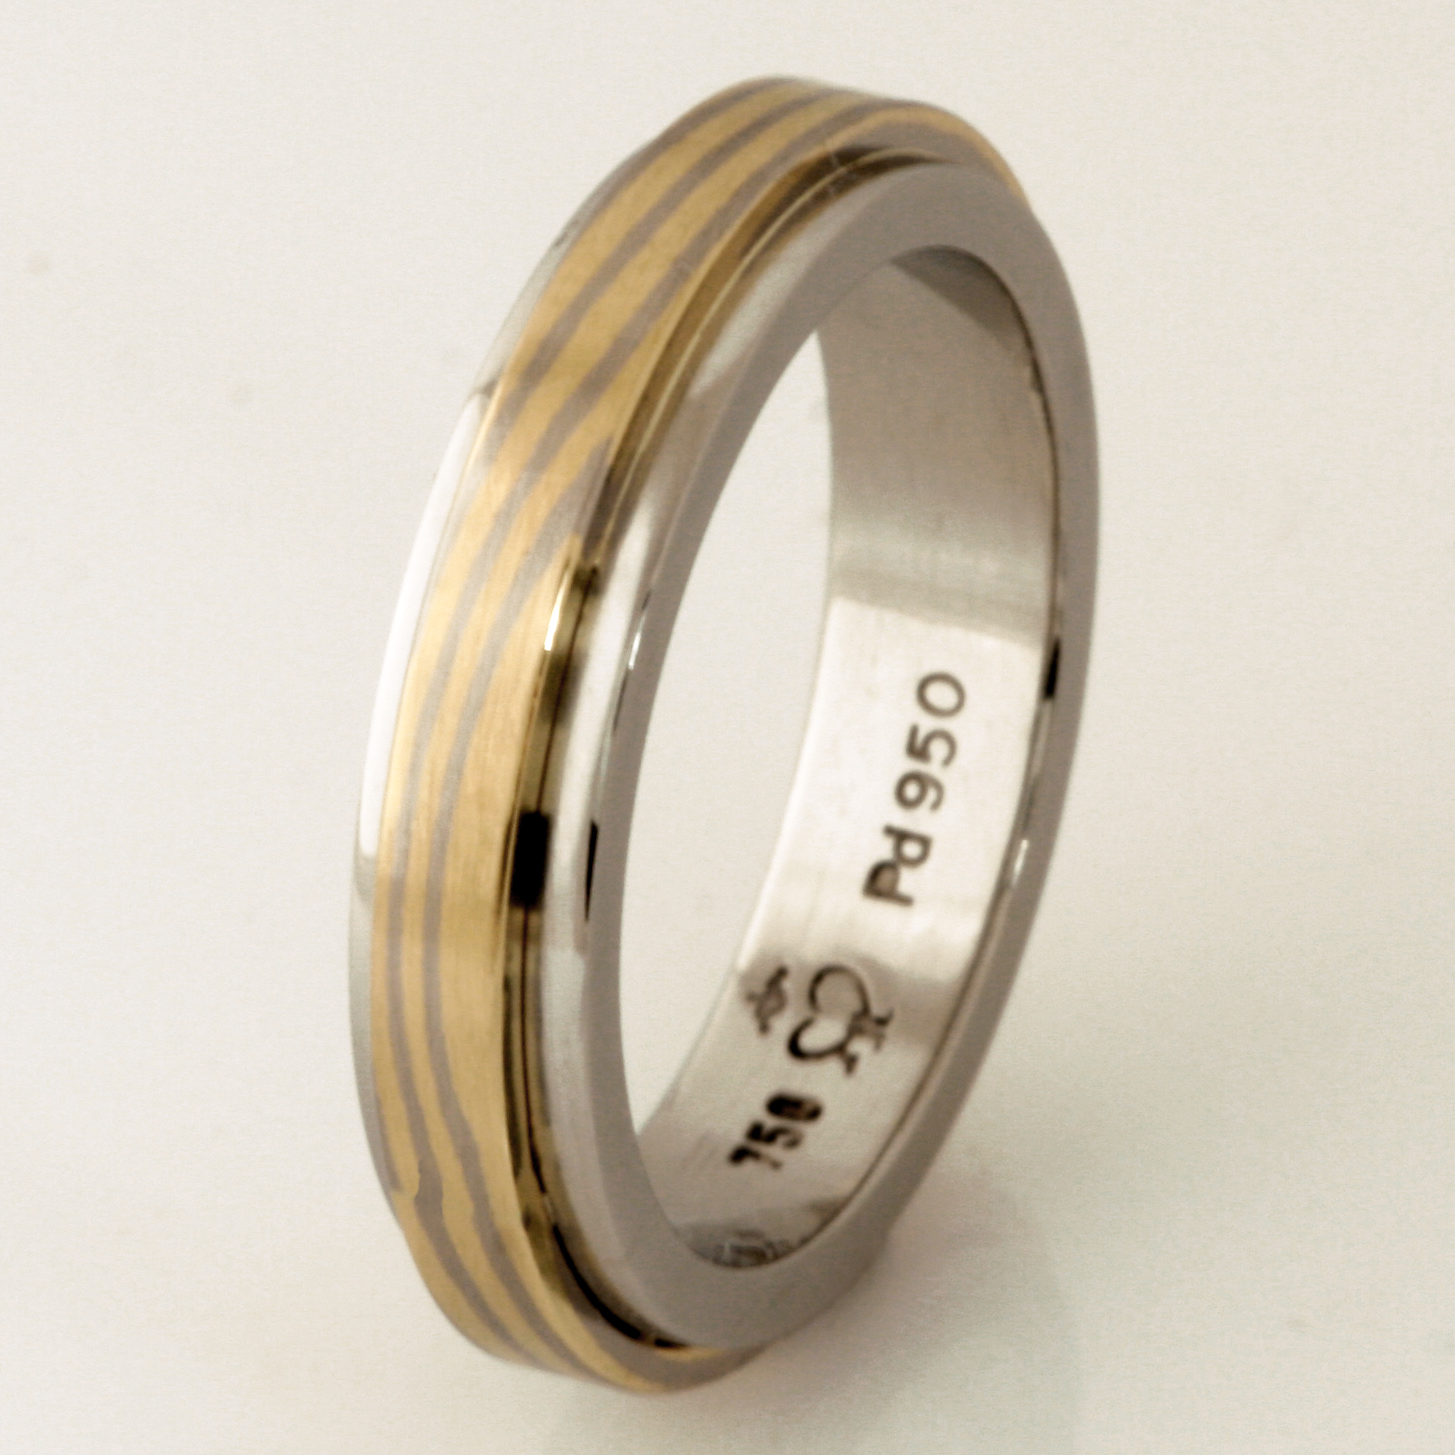 Handmade ladies palladium wedding ring with an 18ct yellow gold and 18ct white gold Mokume Gane band featured on the top around the band